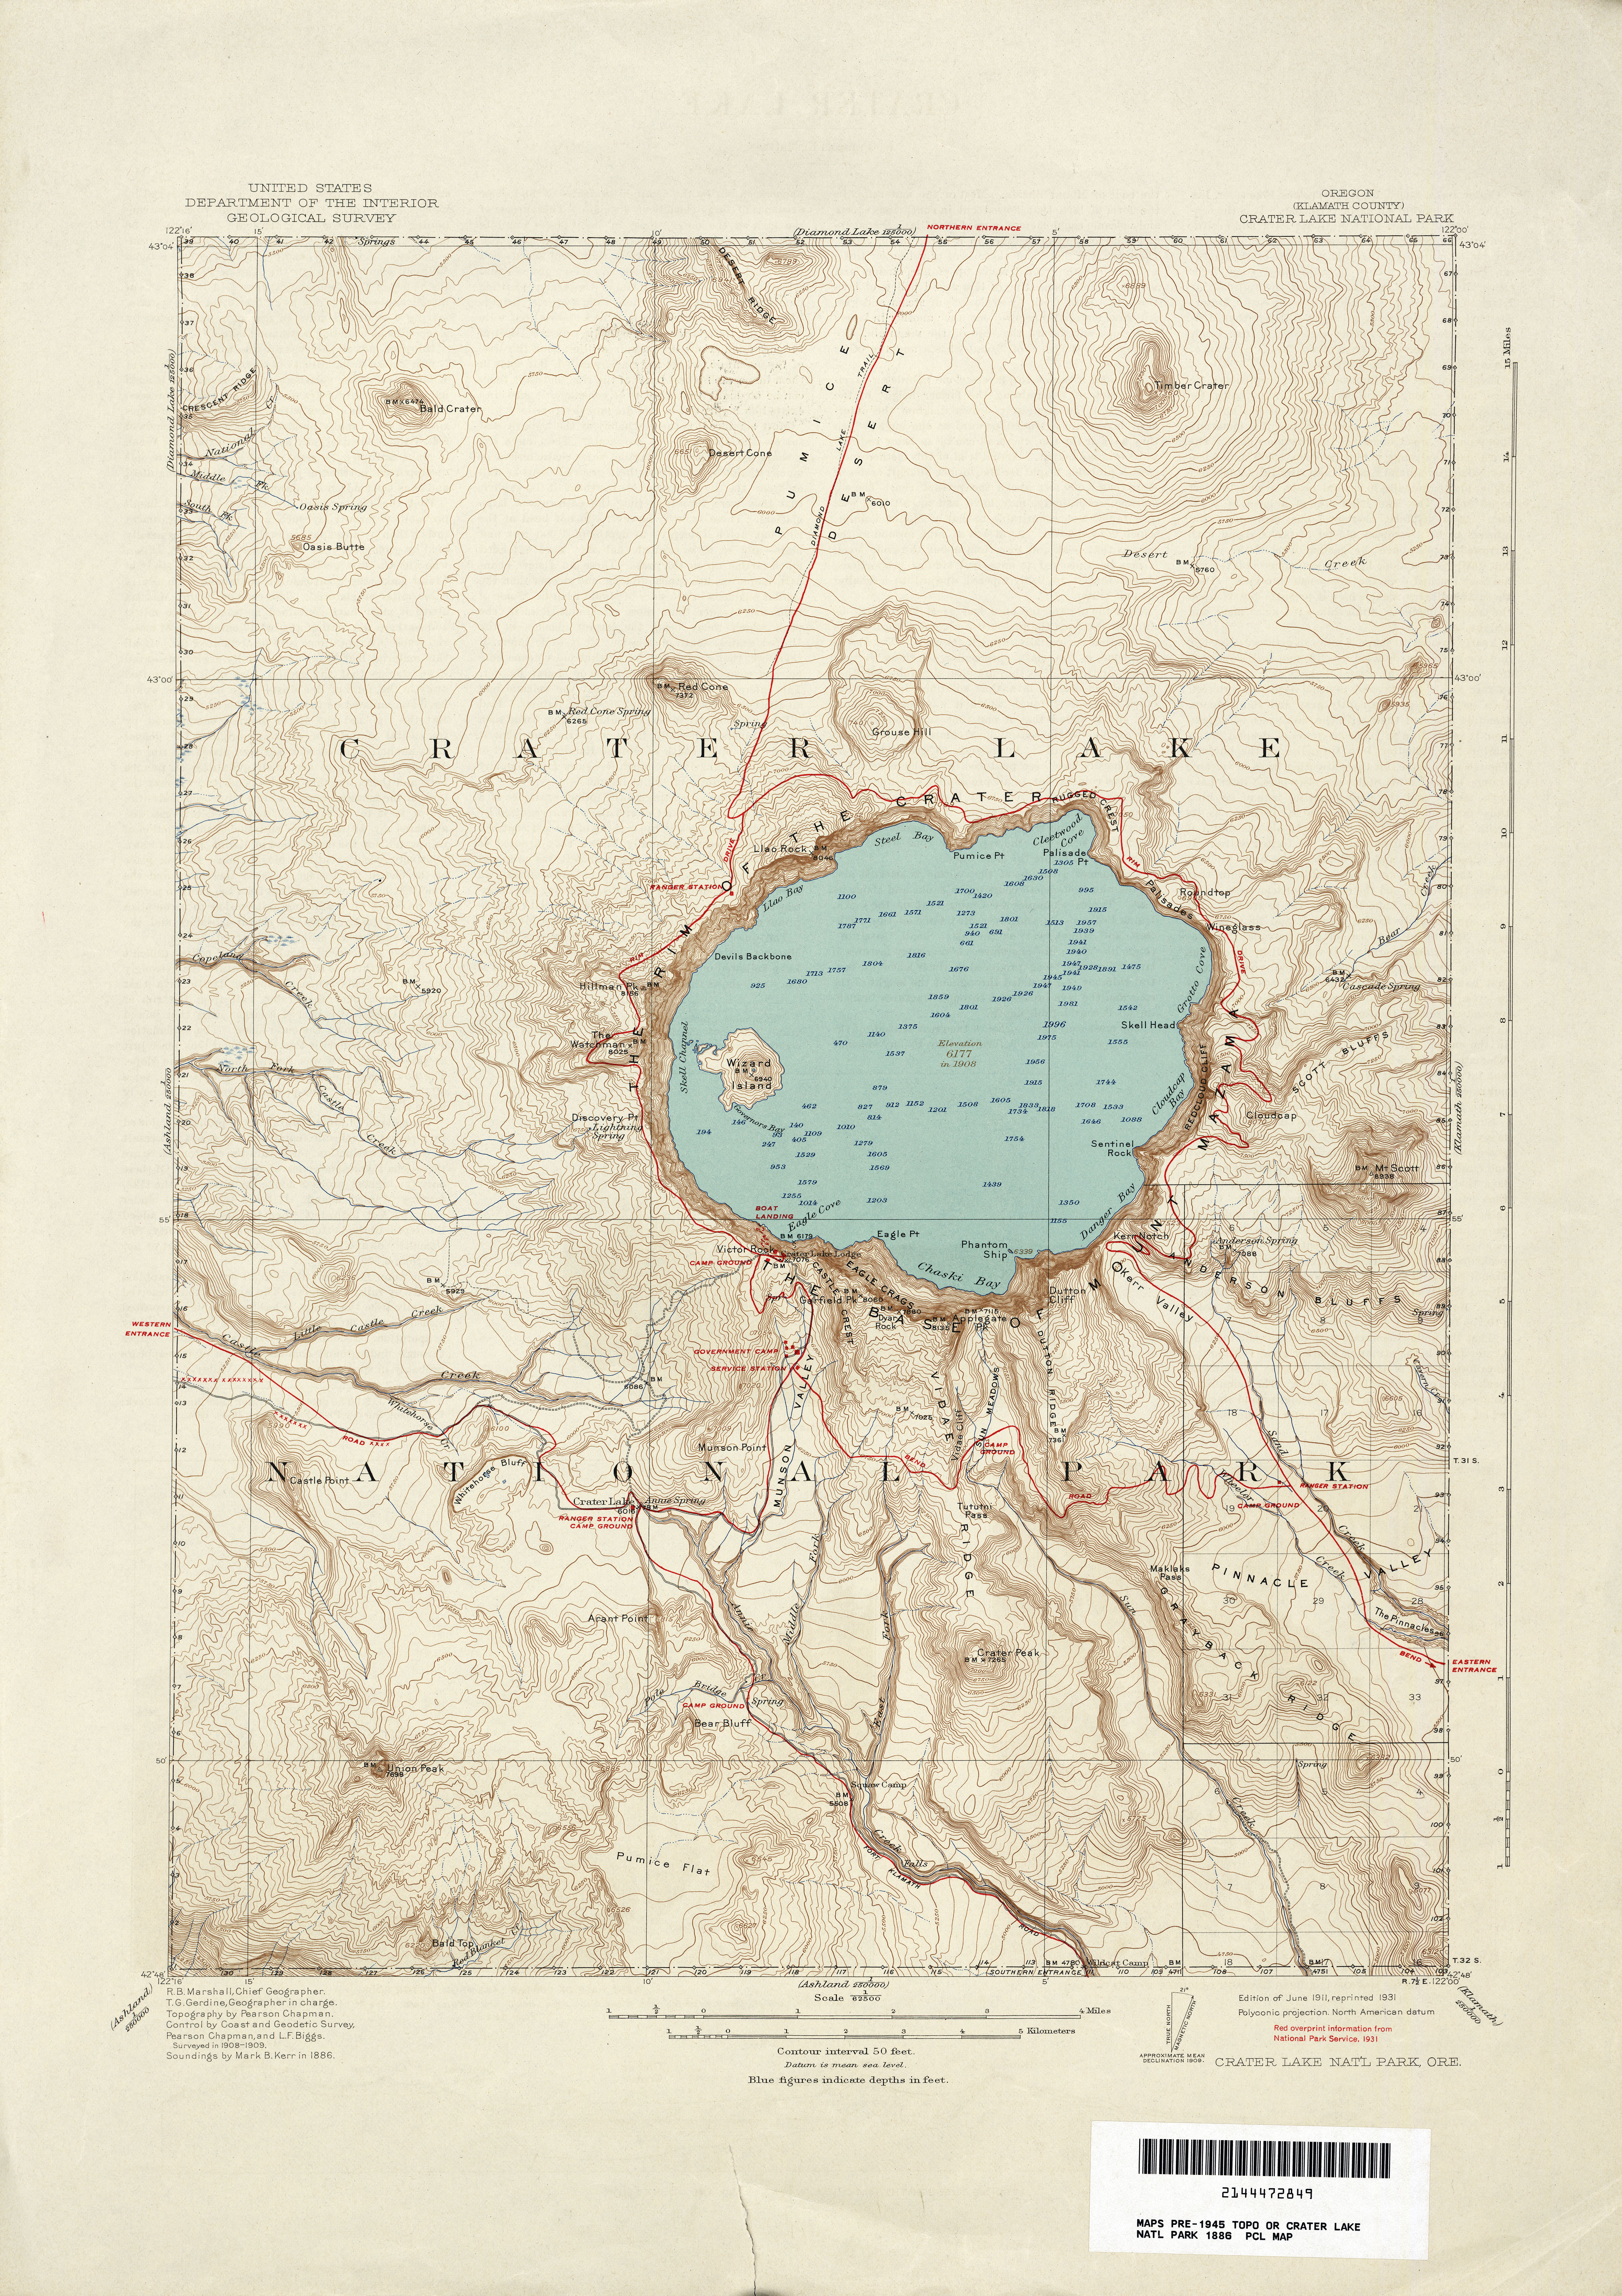 Crater Lake Topographic Map.Oregon Historical Topographic Maps Perry Castaneda Map Collection